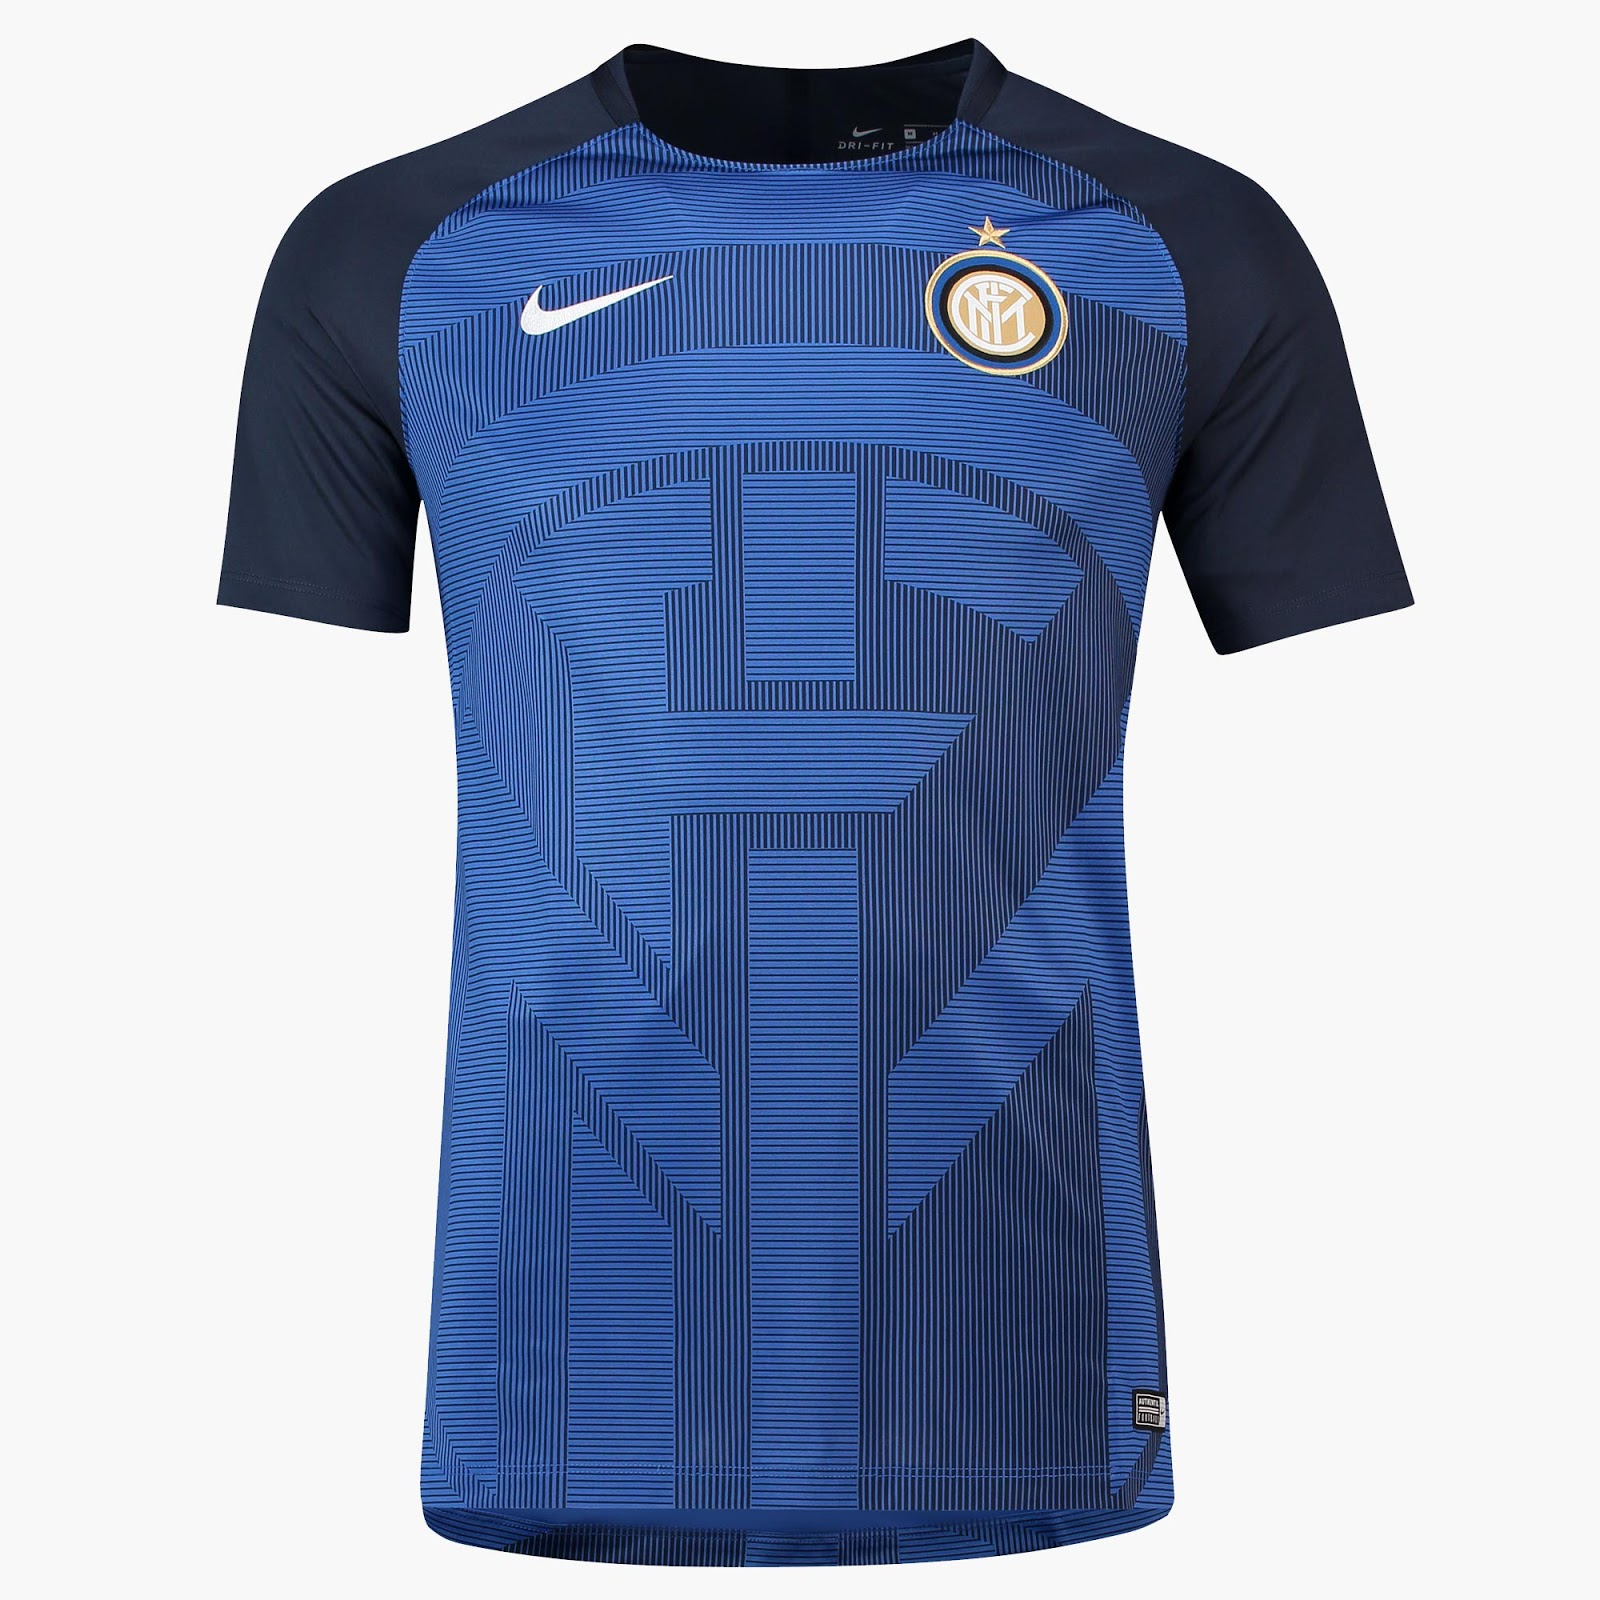 Stunning Nike Inter Milan 18-19 Pre-Match Jersey Released - Leaked ... d6e4275bd